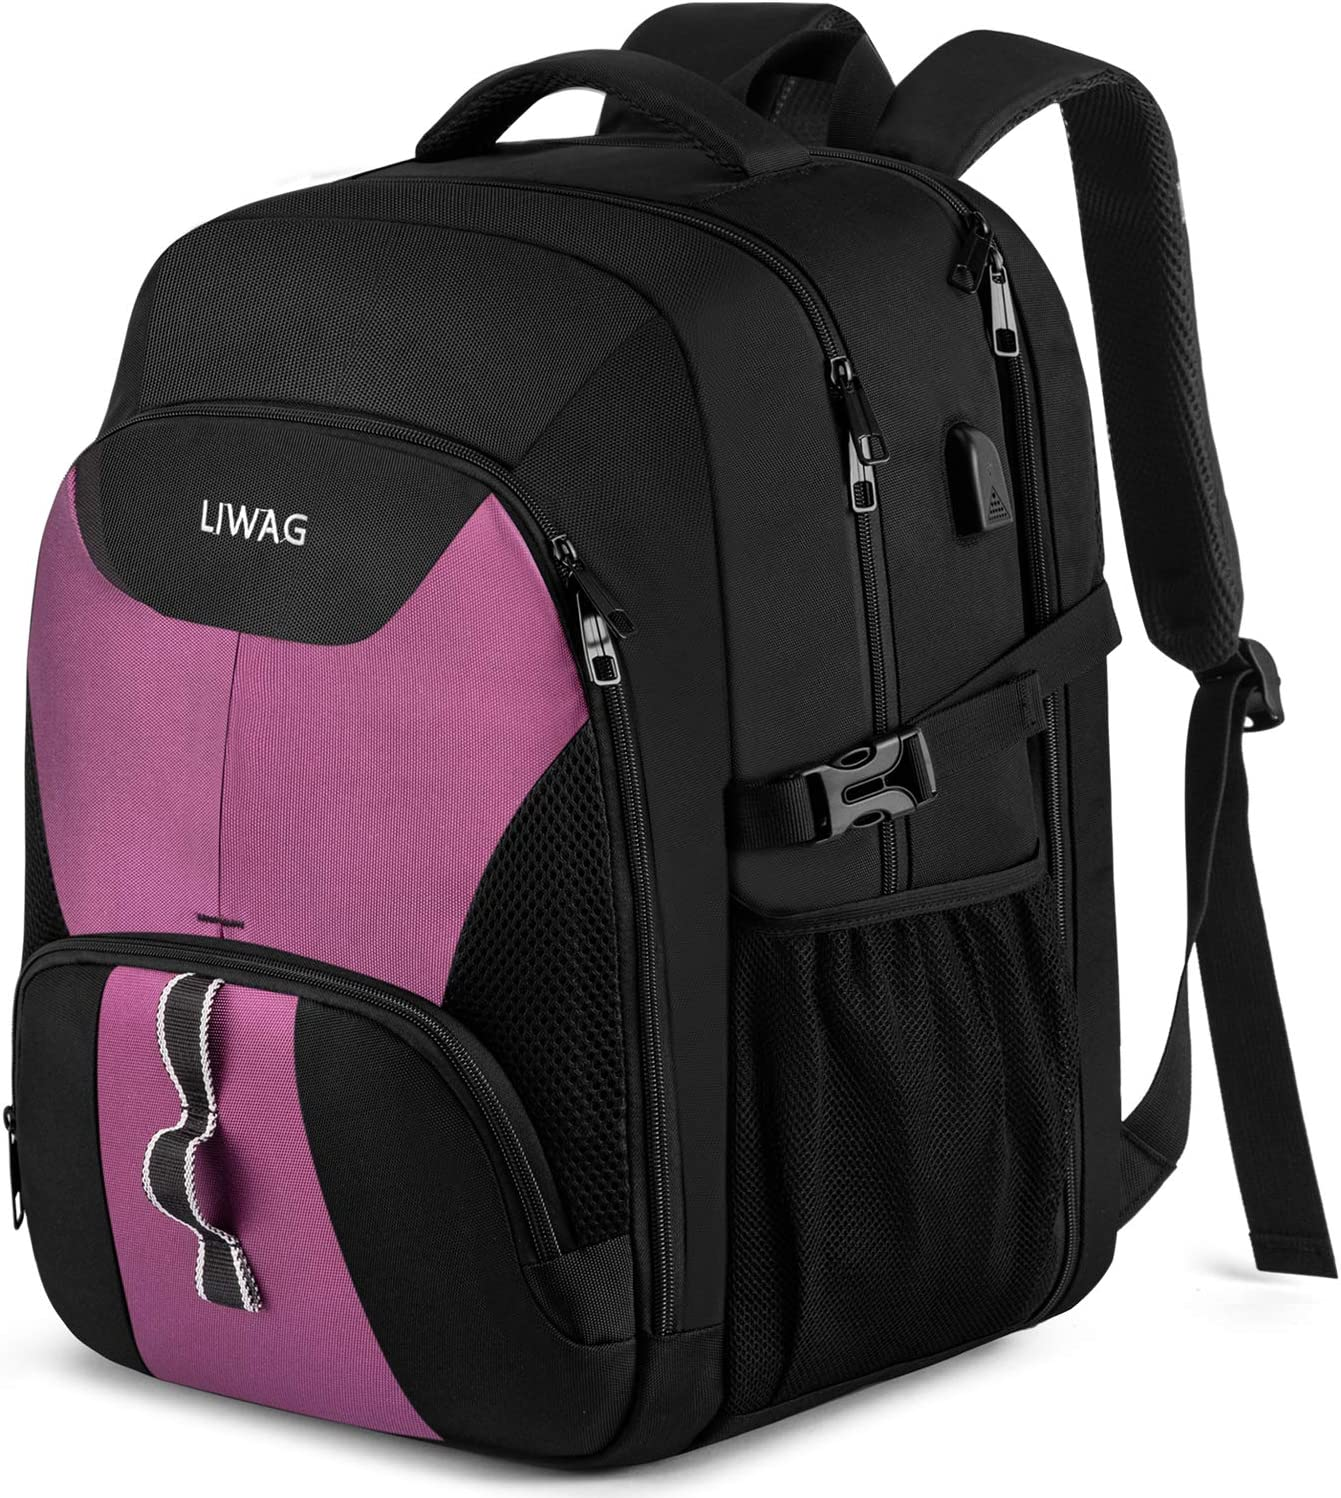 Business Laptop Backpacks for Women Girls,Extra Large Travel Backpack with USB Charging Port,TSA Anti Theft Durable Water Resistant College School Computer Bag Fits 17.3Inch Laptop Notebook,Purple